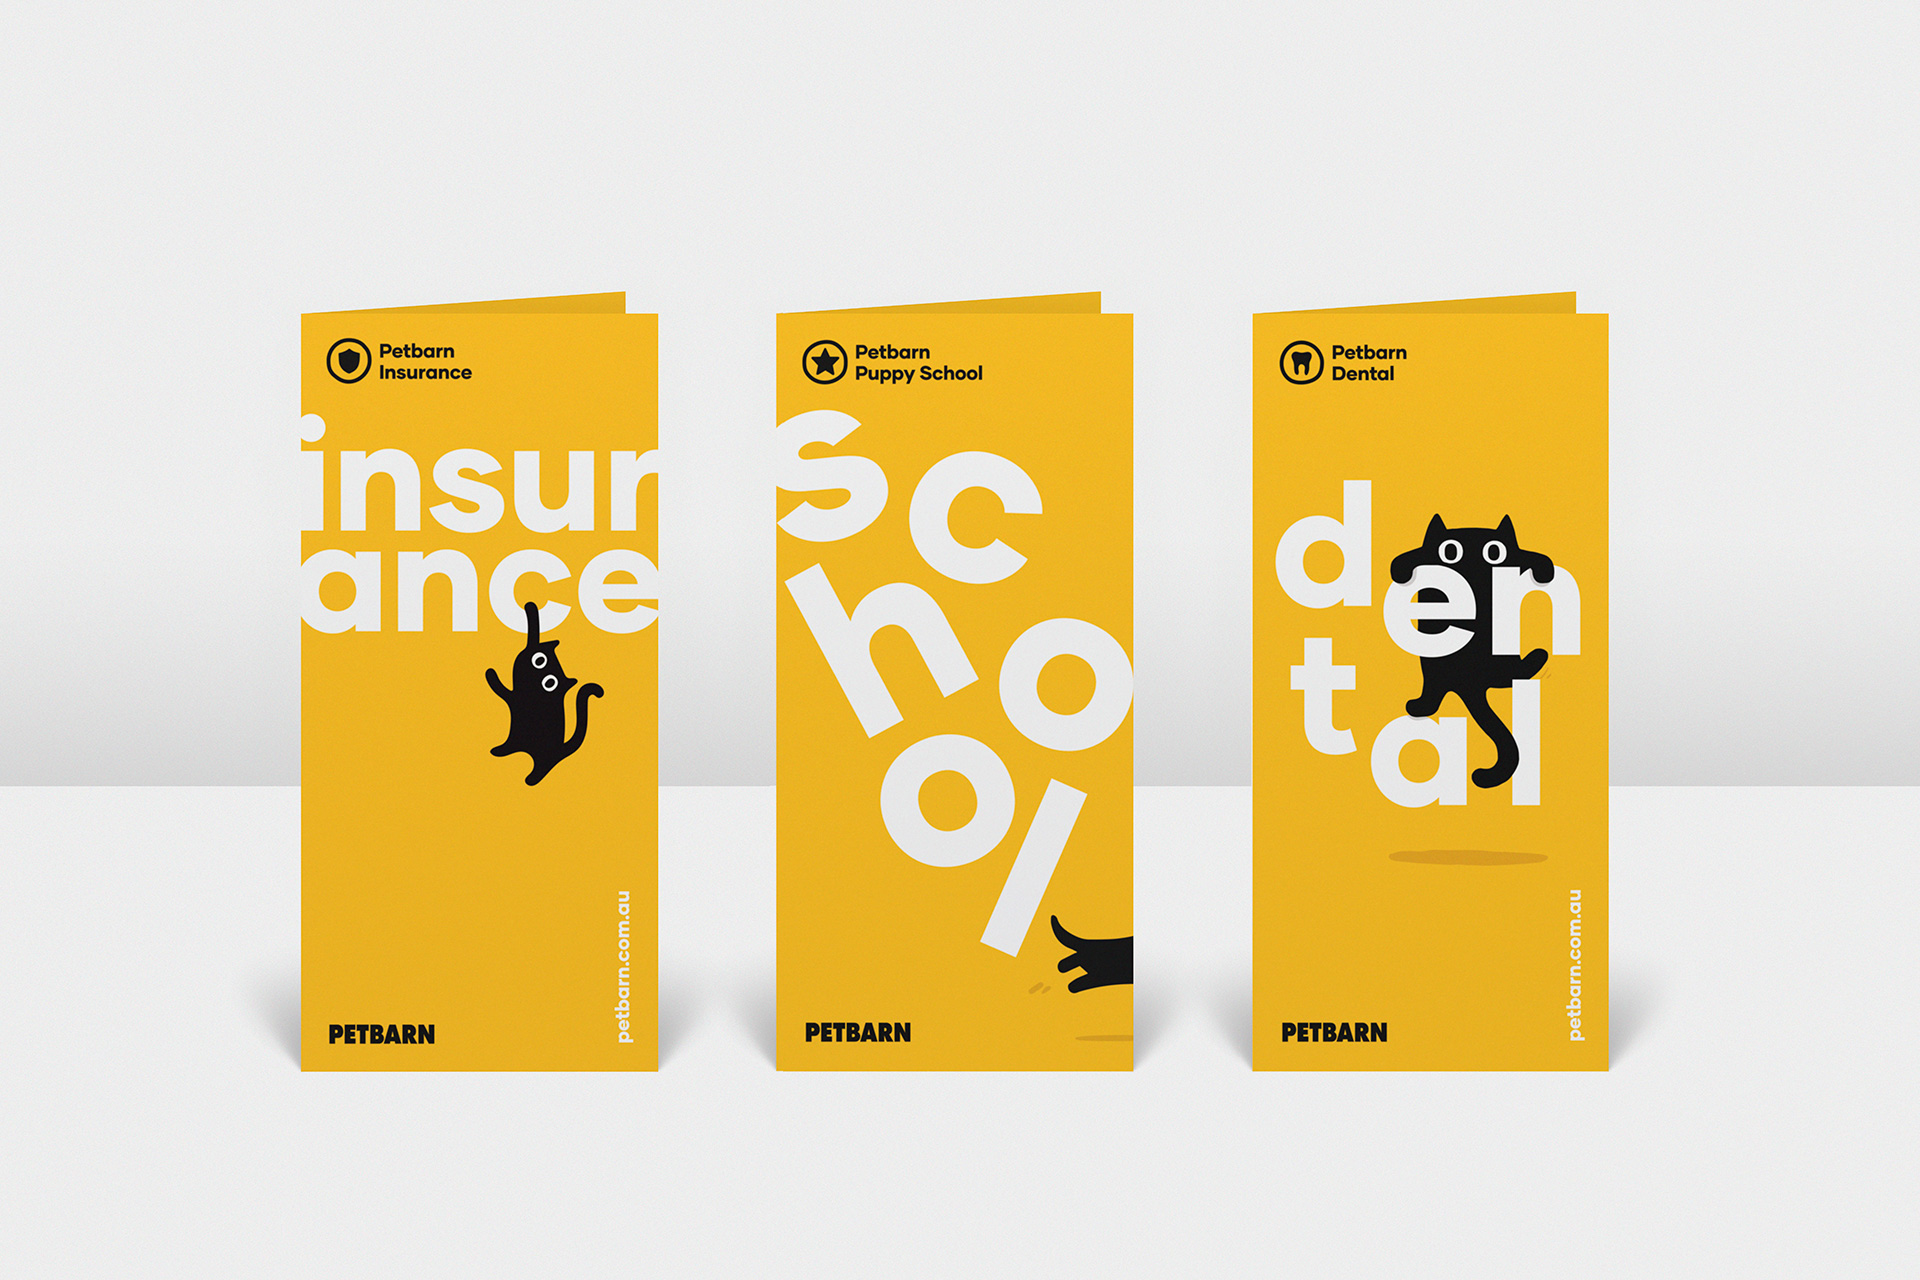 New Identity for Petbarn by Landor